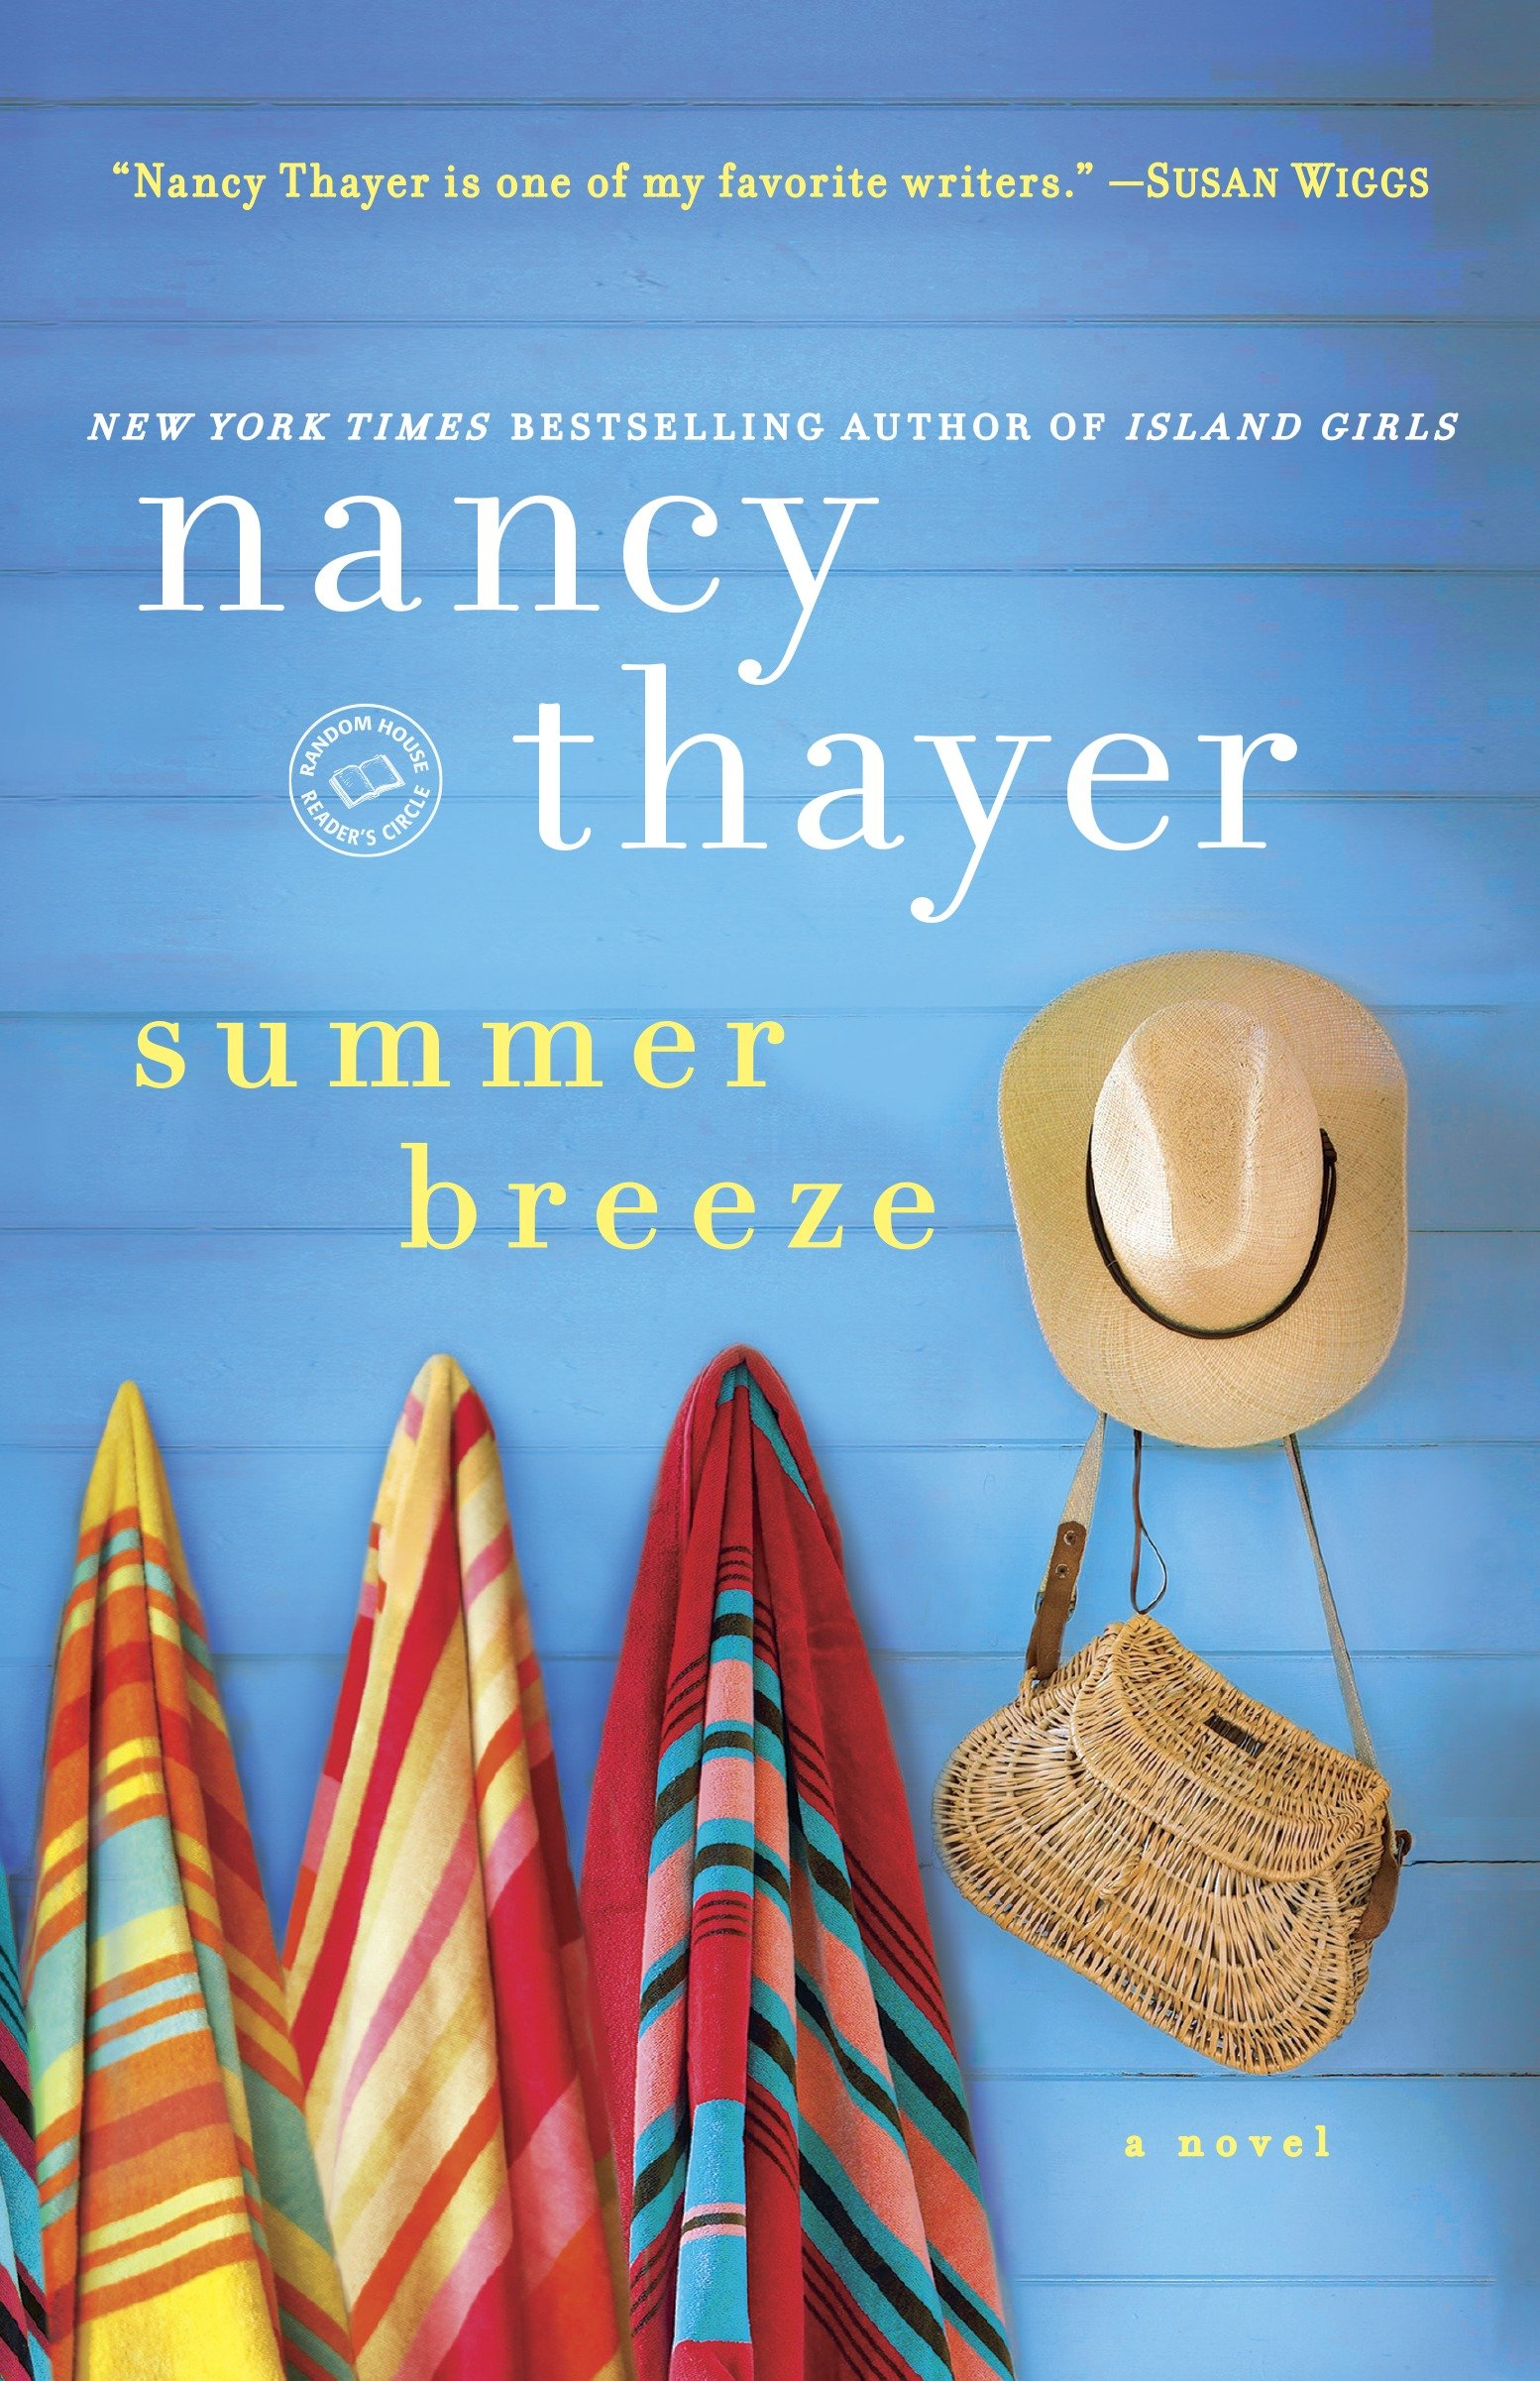 Summer breeze cover image